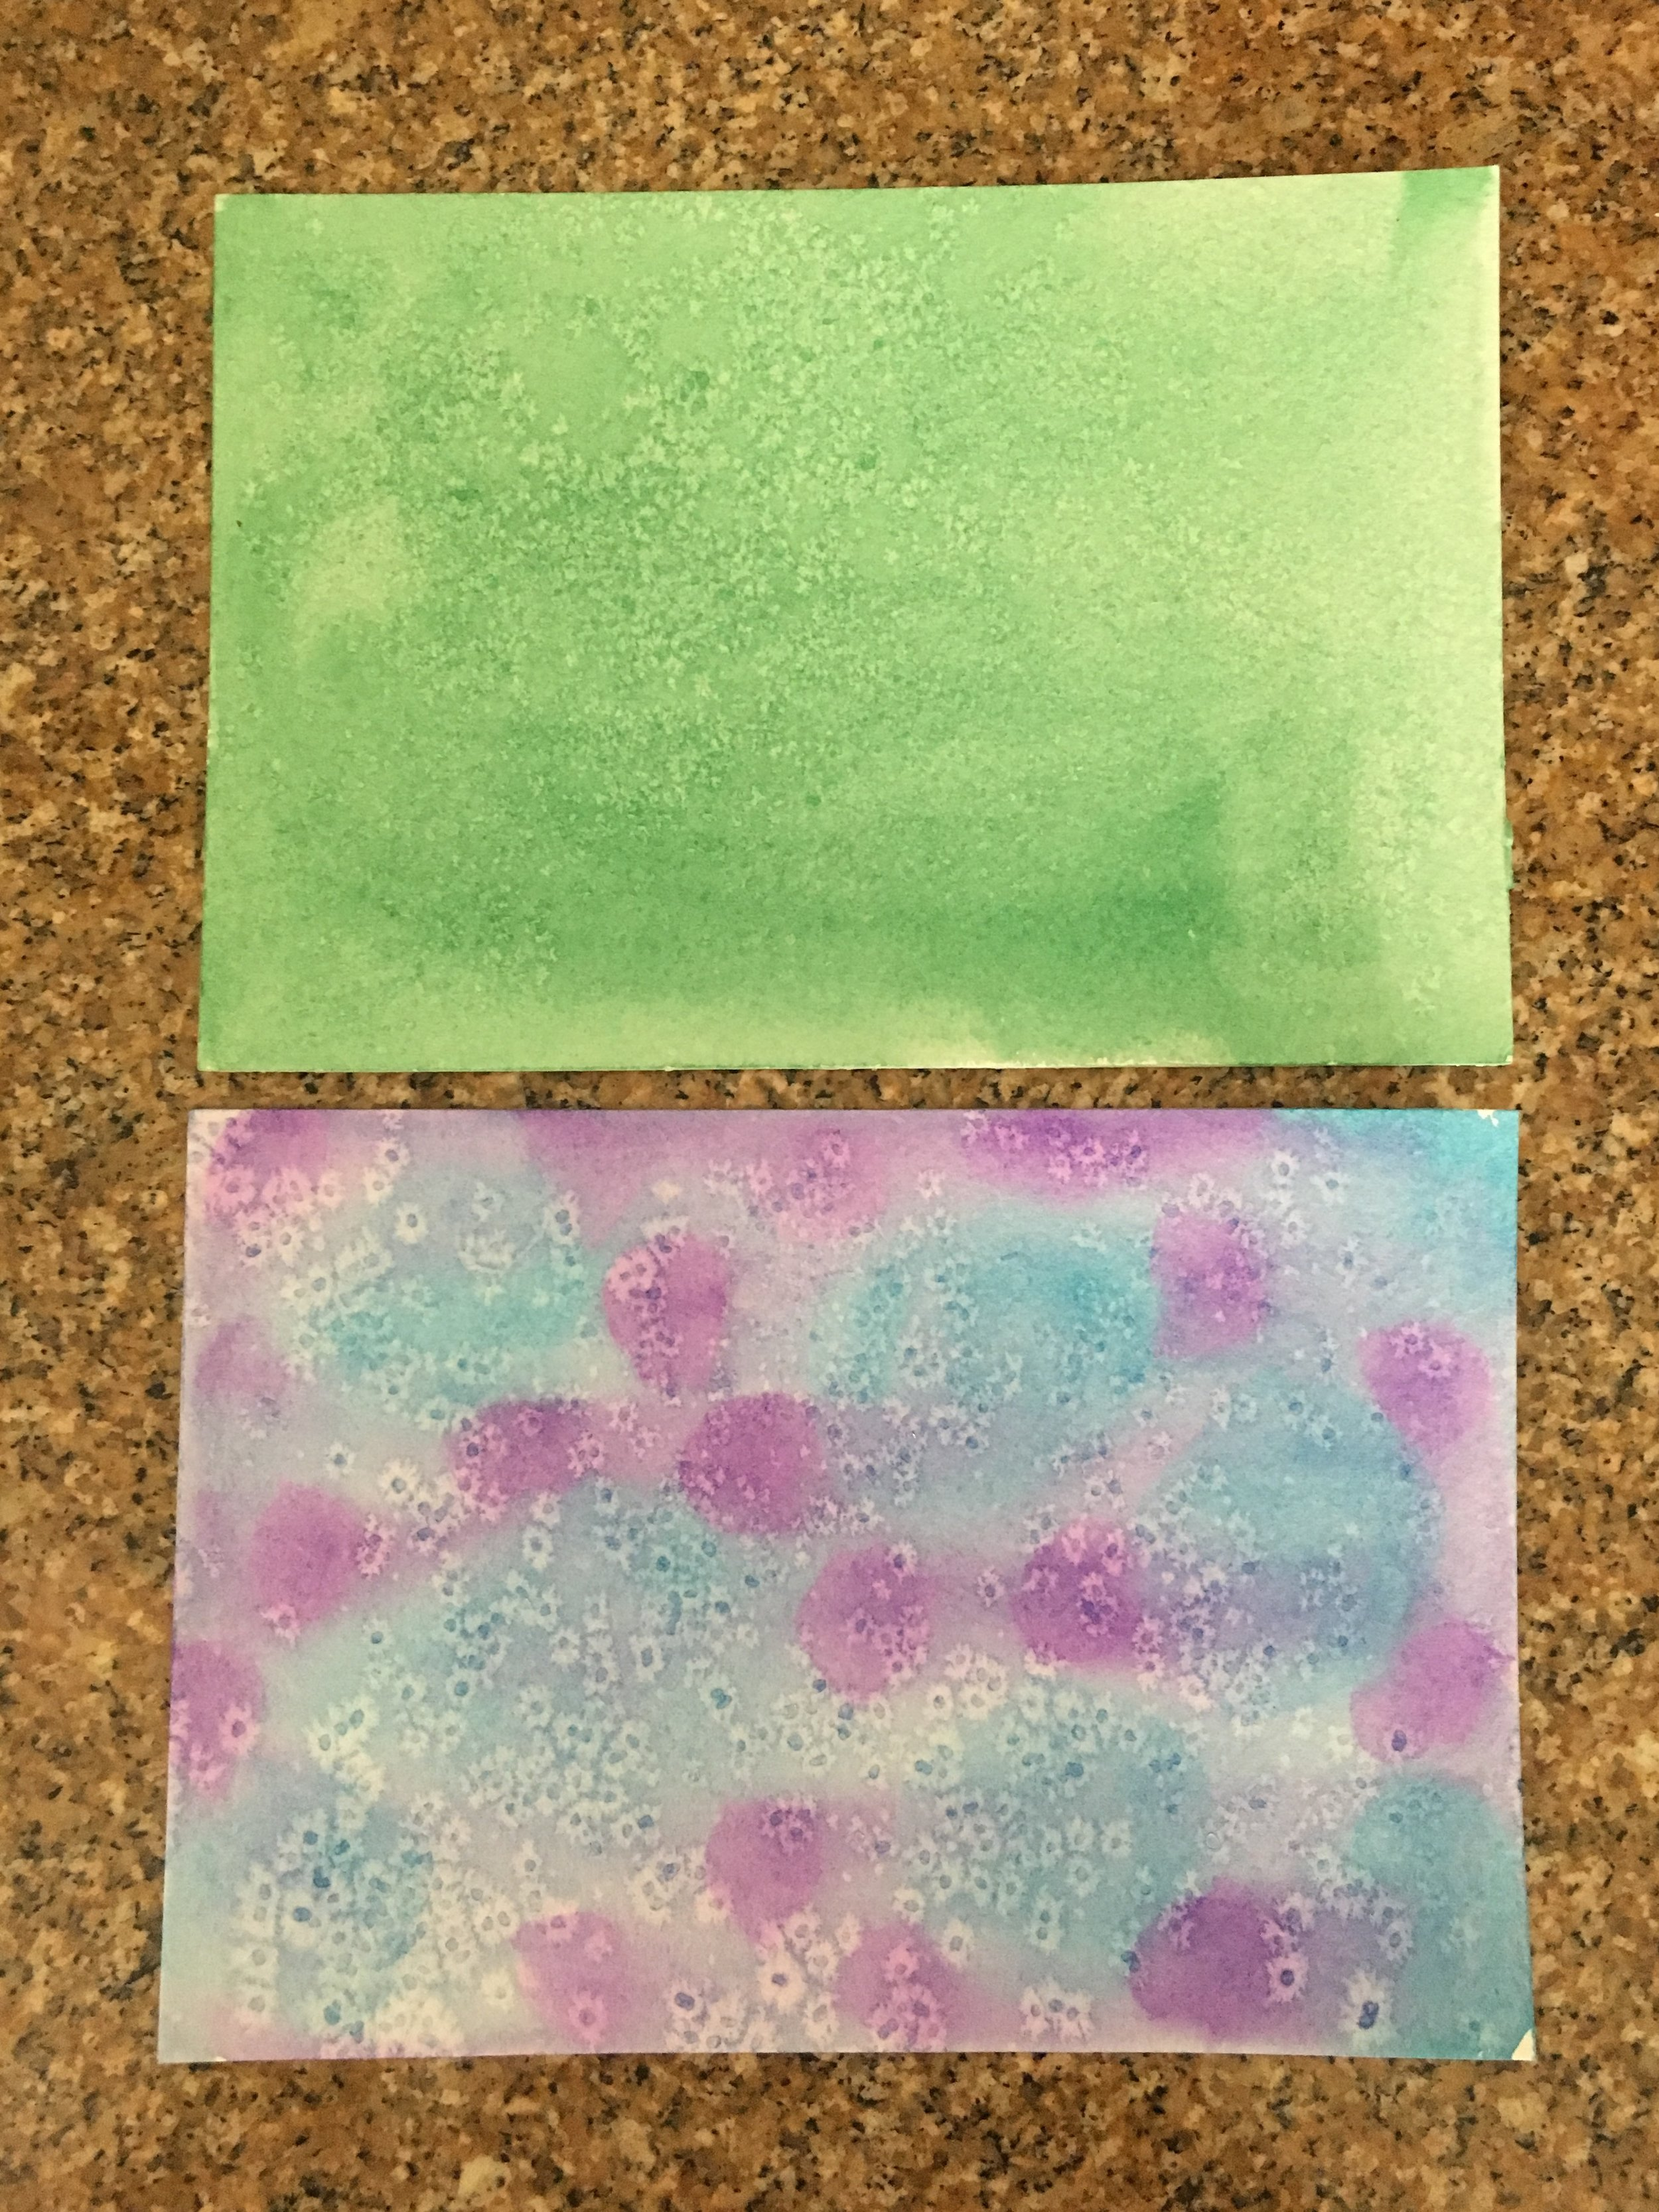 Two Papers created using a Watercolor Salt Technique